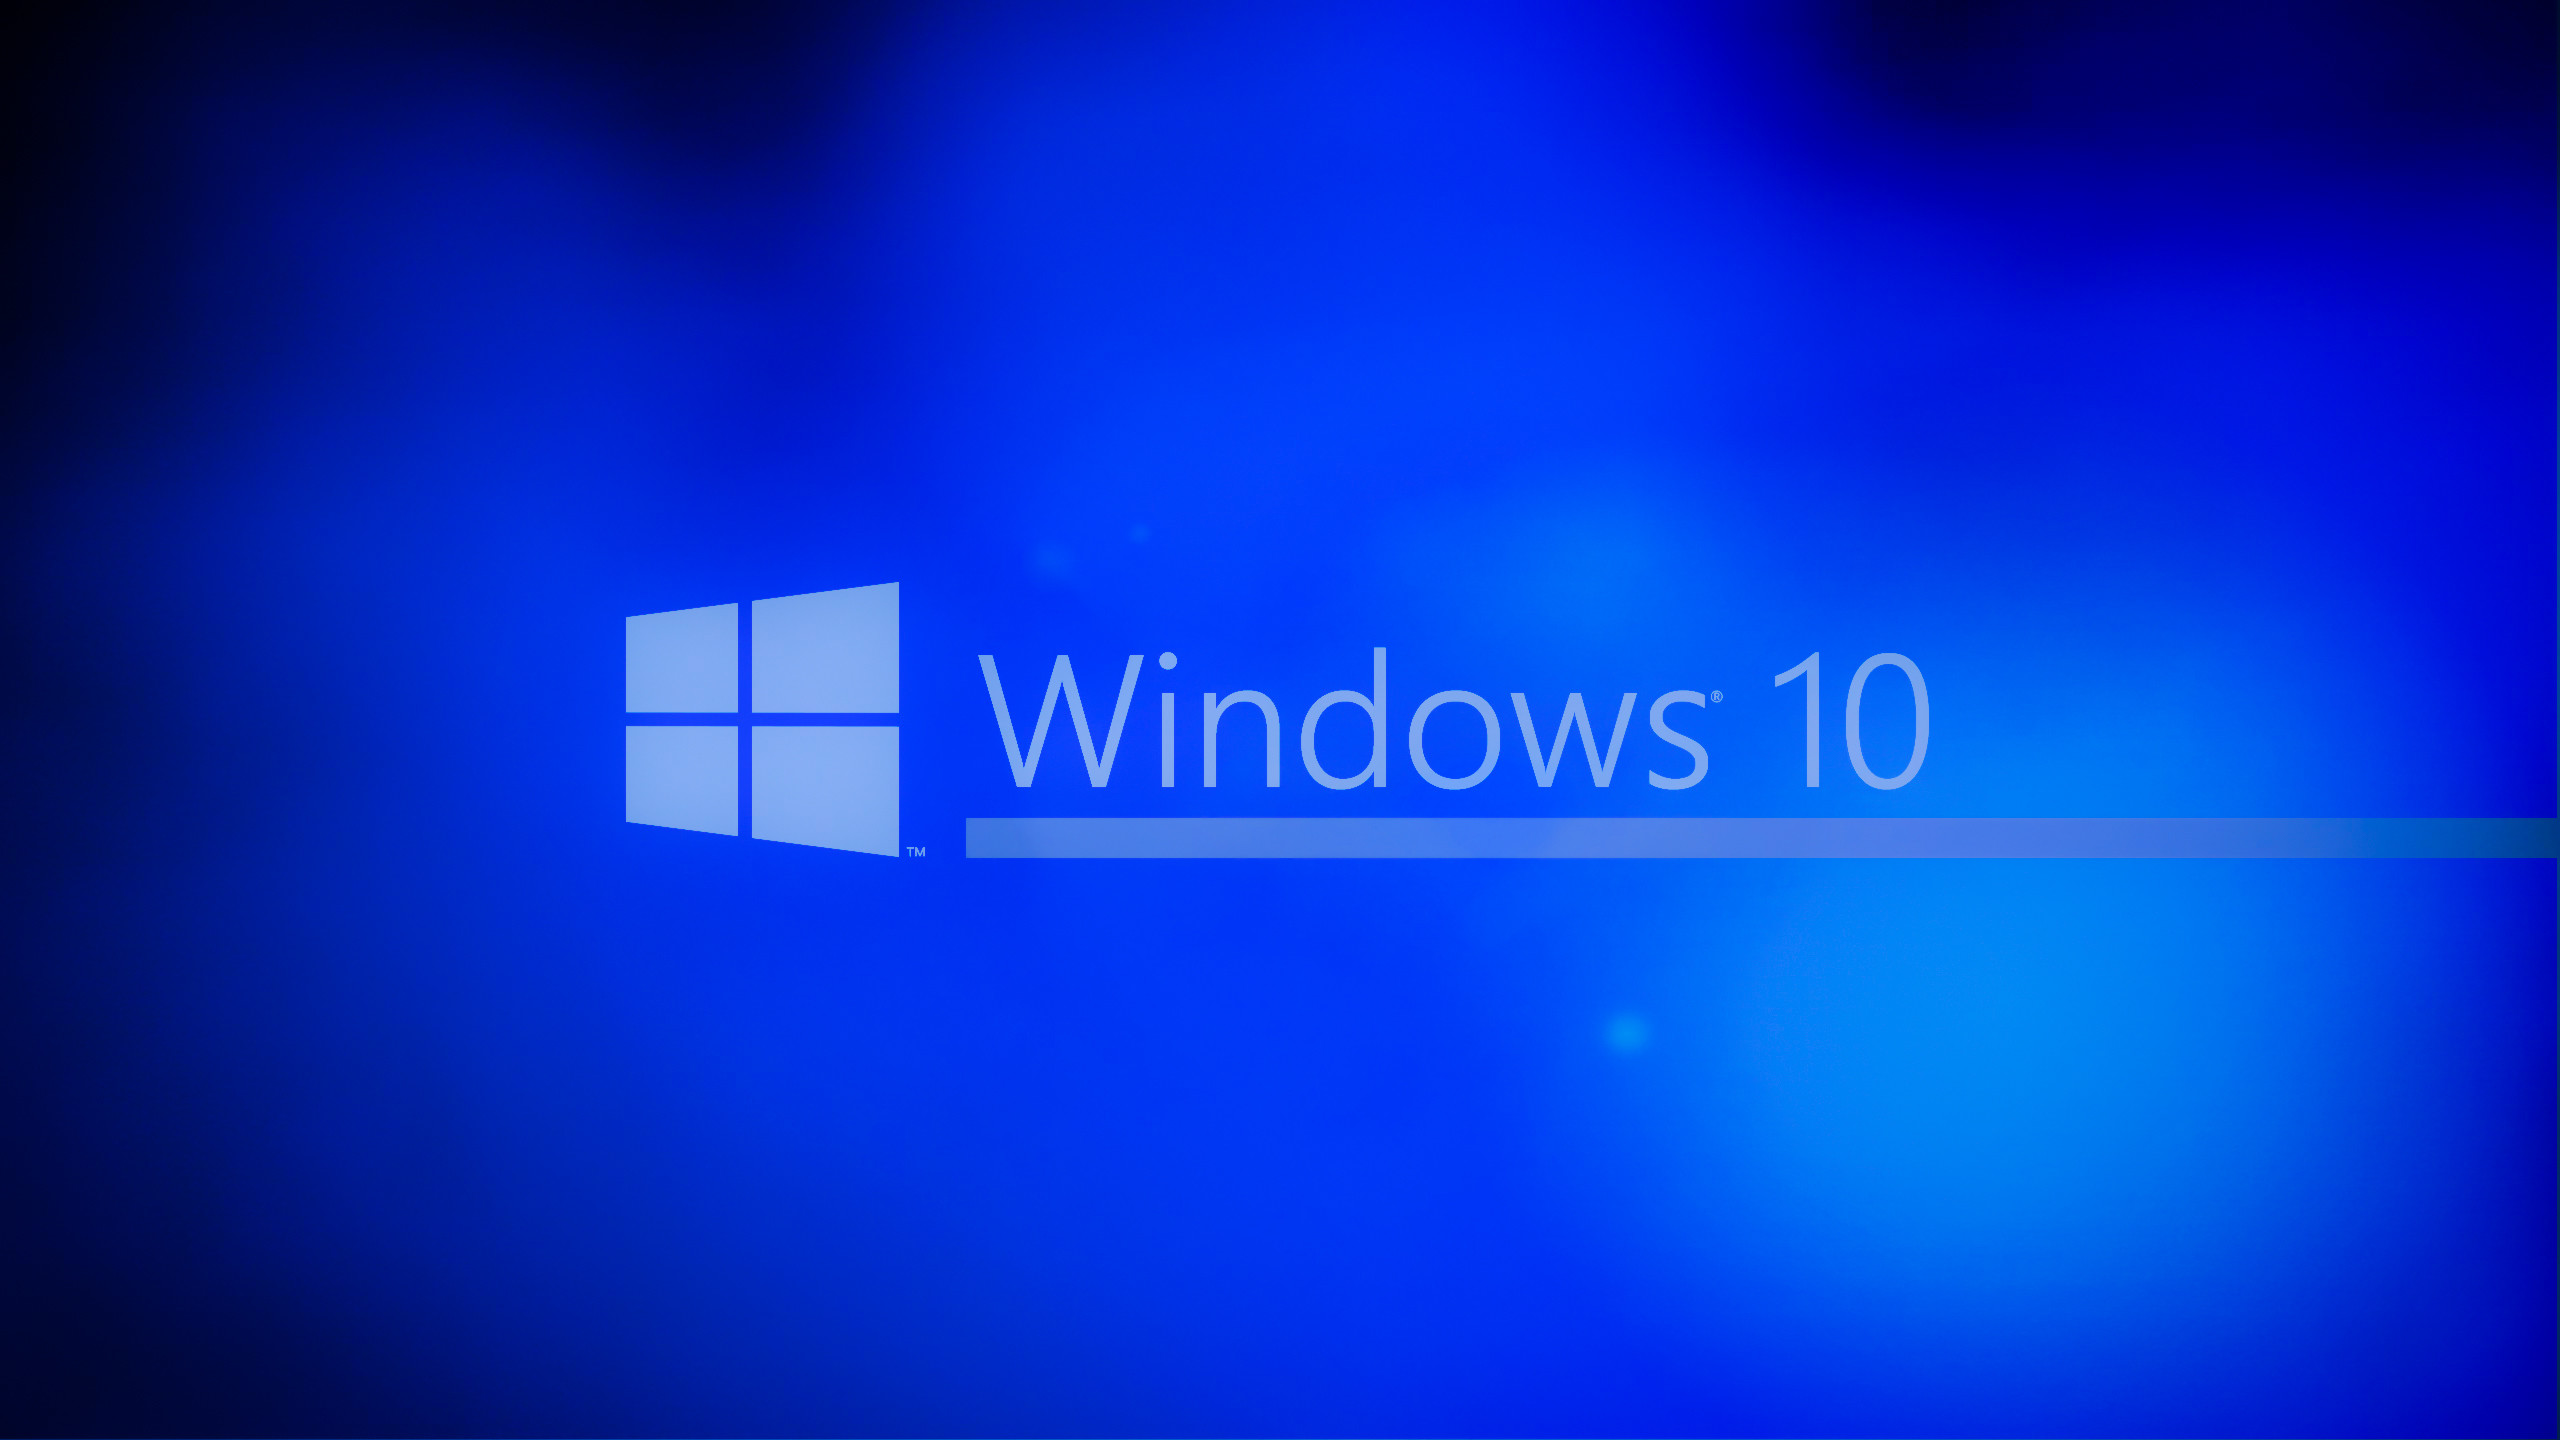 2560x1440 Windows 10 Wallpaper, Logo, Start - HD Wallpapers, Ultra HD Wallpapers